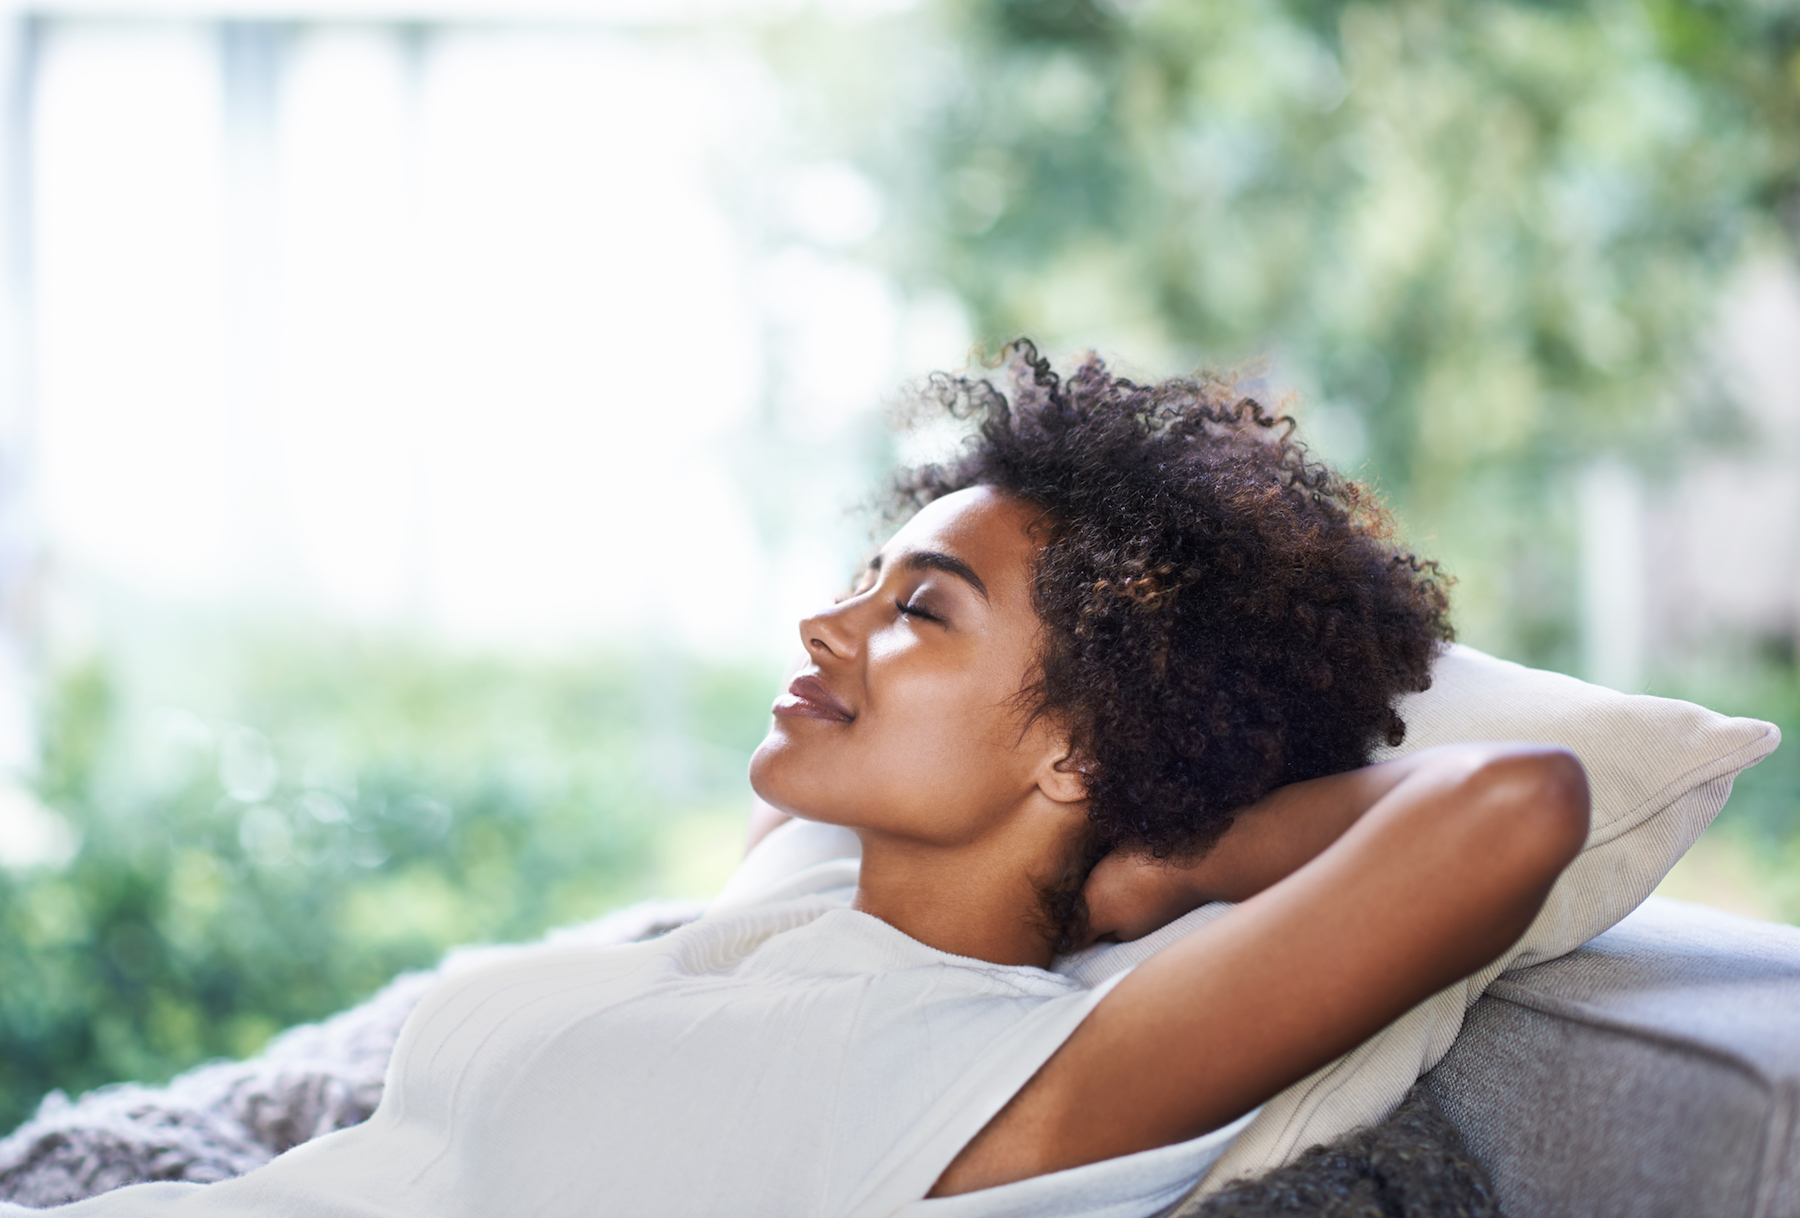 Woman relaxing with her eyes closed